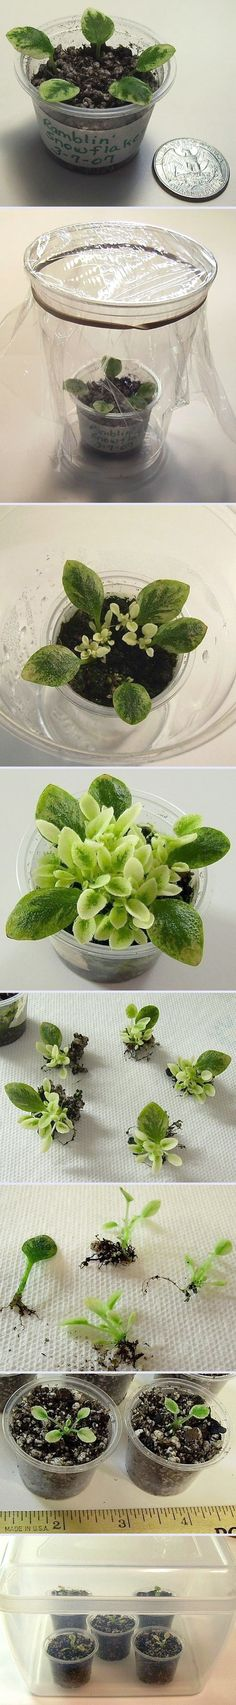 African Violet Propagation.   When I propagate African Violets from leaves, I plant the leaves in the same potting mix that I use for planting my violets.  The container for the leaves should always have holes in the bottom for drainage of excess water.  The leaves are kept moist, but not too wet.  If the leaves are kept very wet, they will rot.